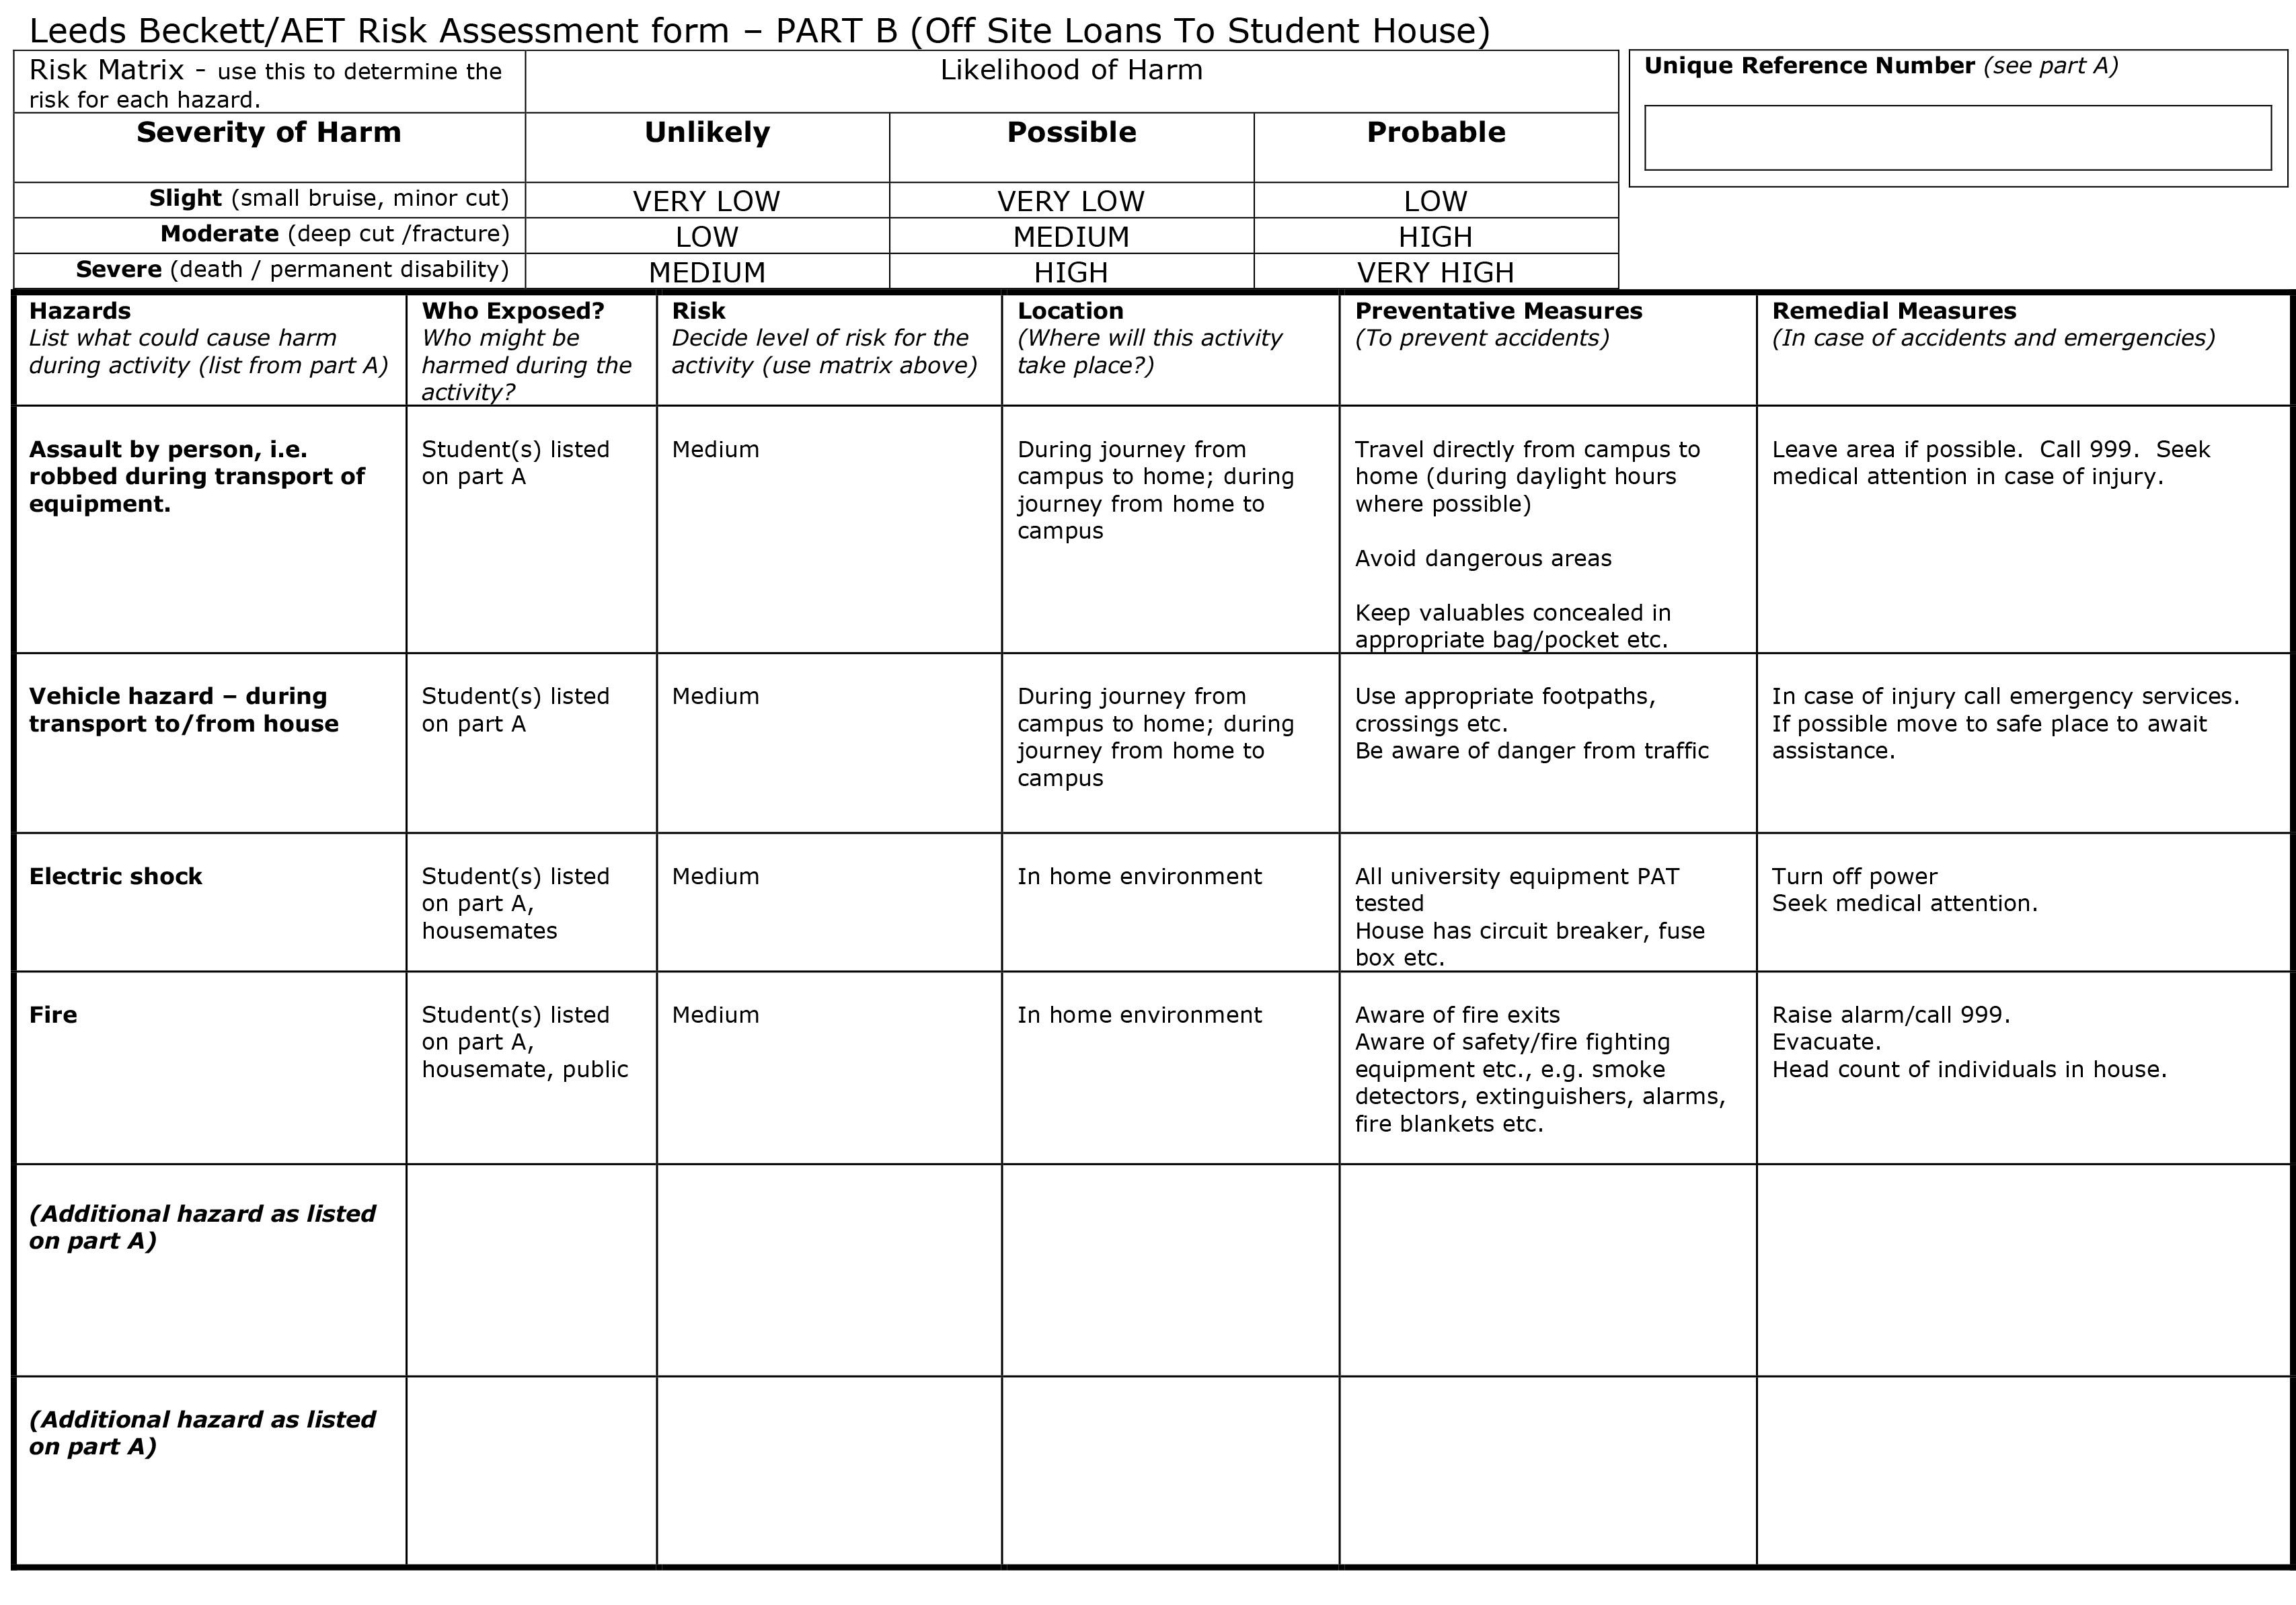 here is our pre filled out part b risk assessment form for off